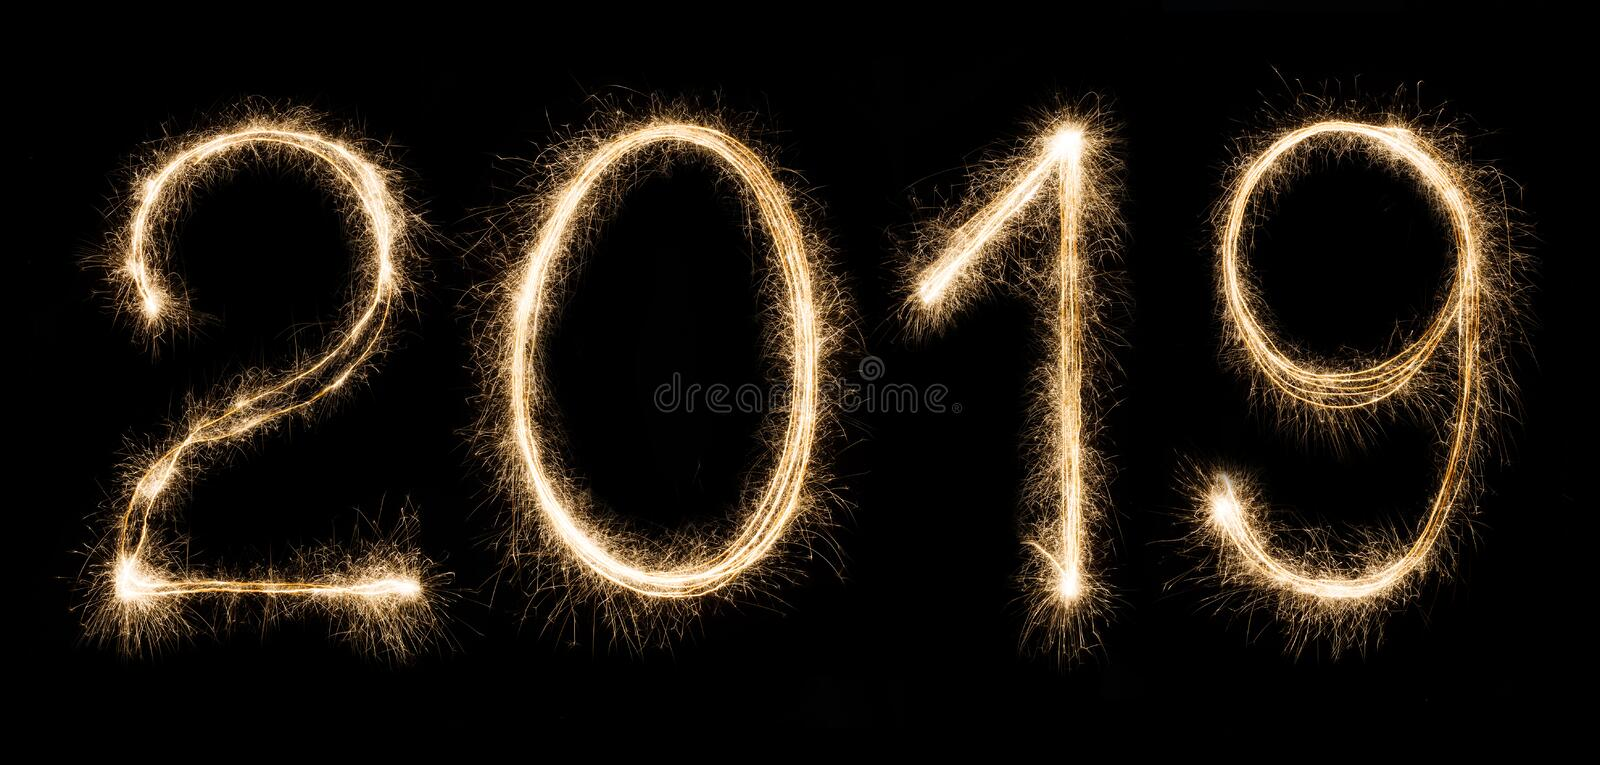 2019 written with a sparklers isolated on black background royalty free stock photography